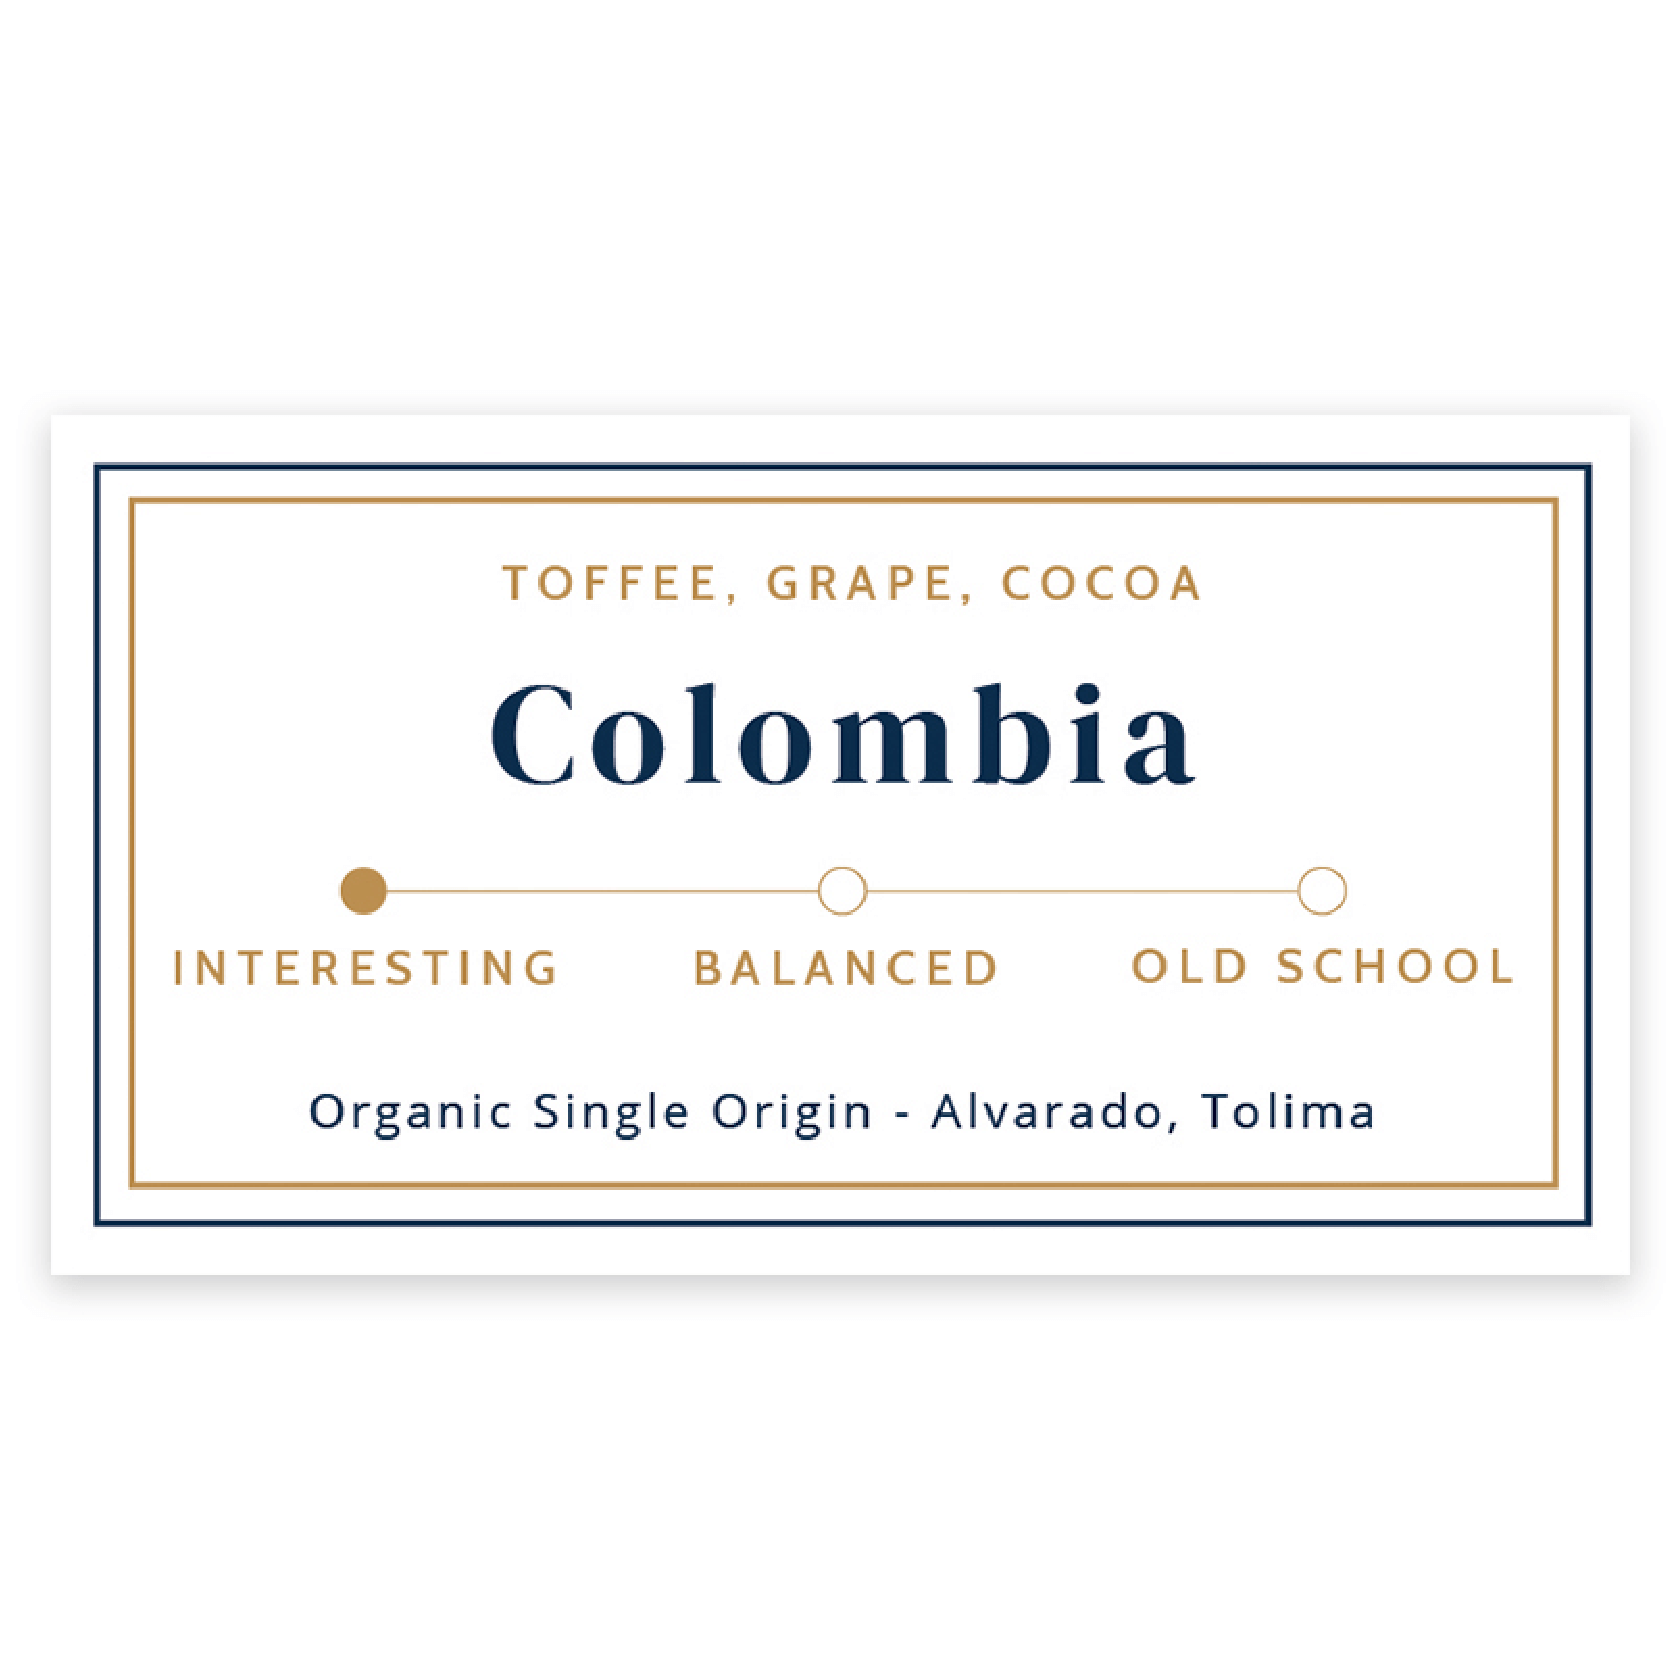 Colombia from Evangelist Roasting Co